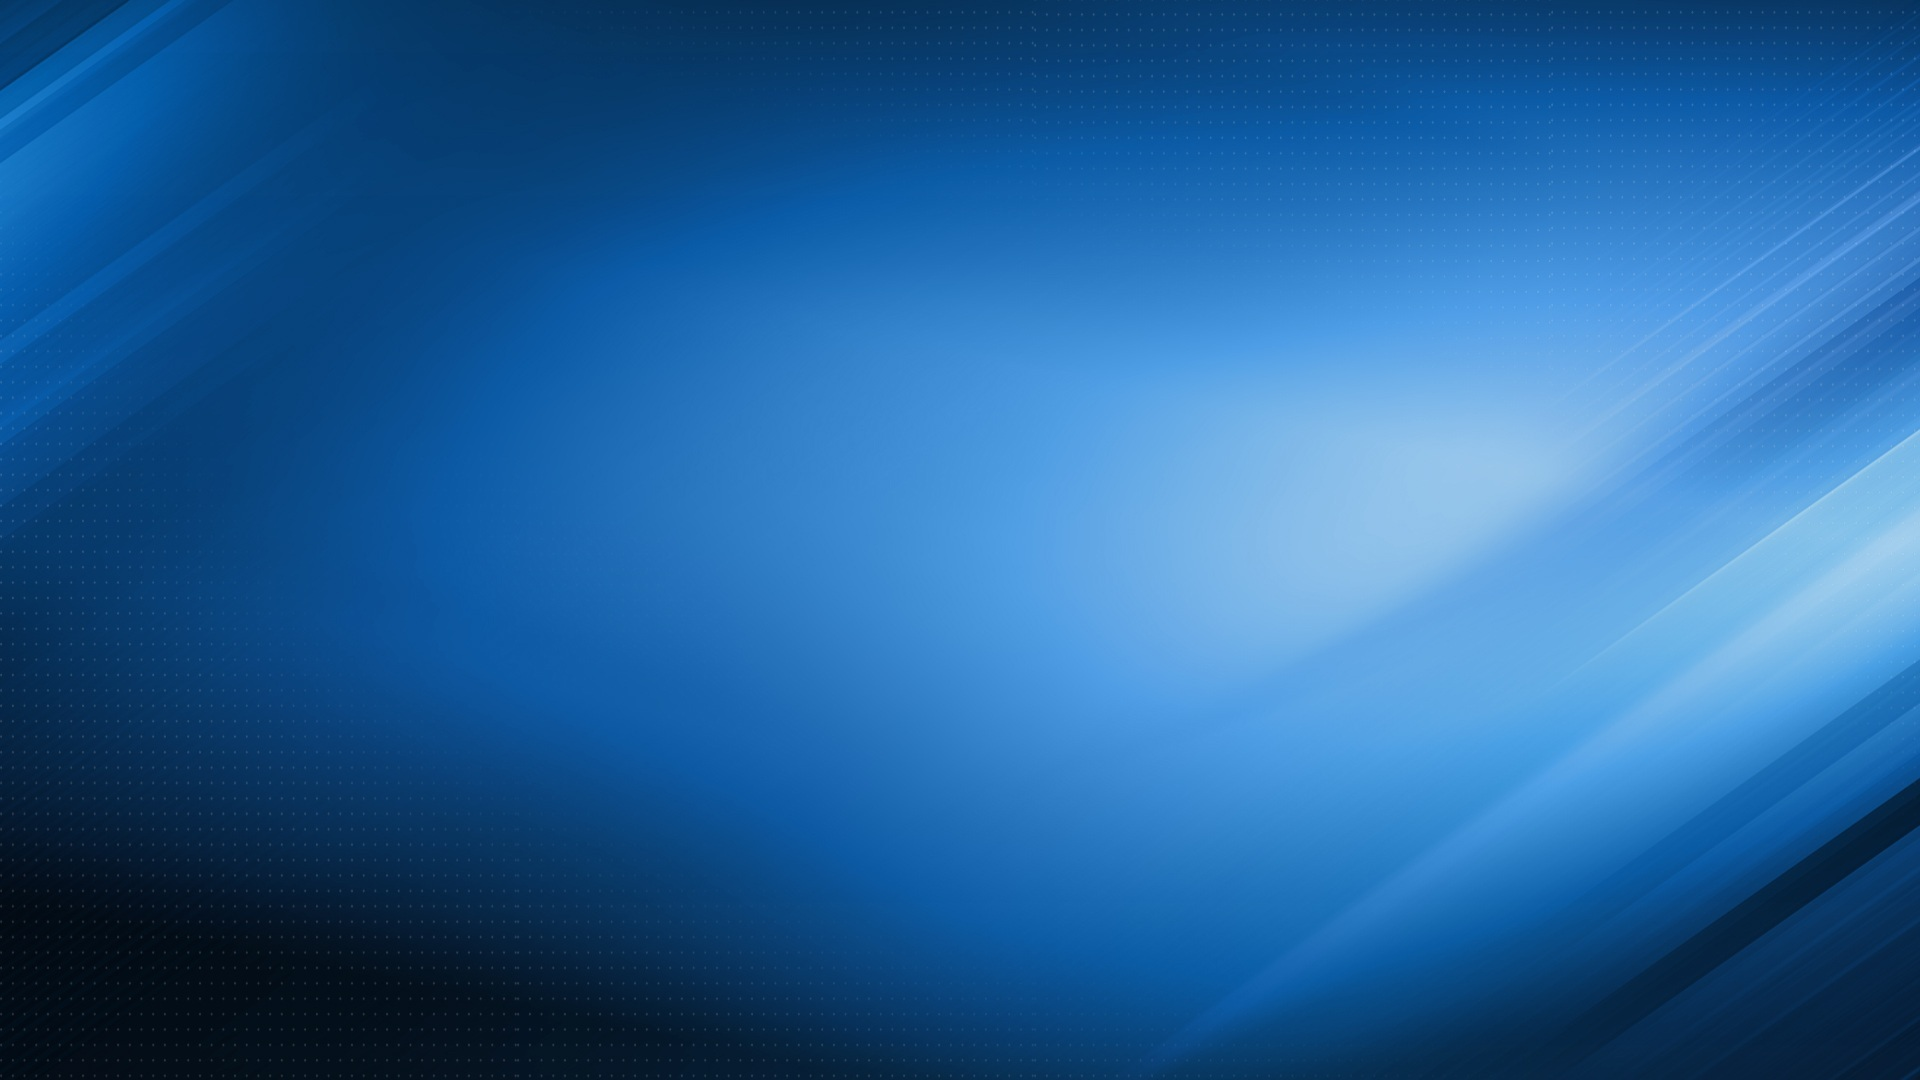 Blue gradient wallpapers and images   wallpapers pictures photos 1920x1080